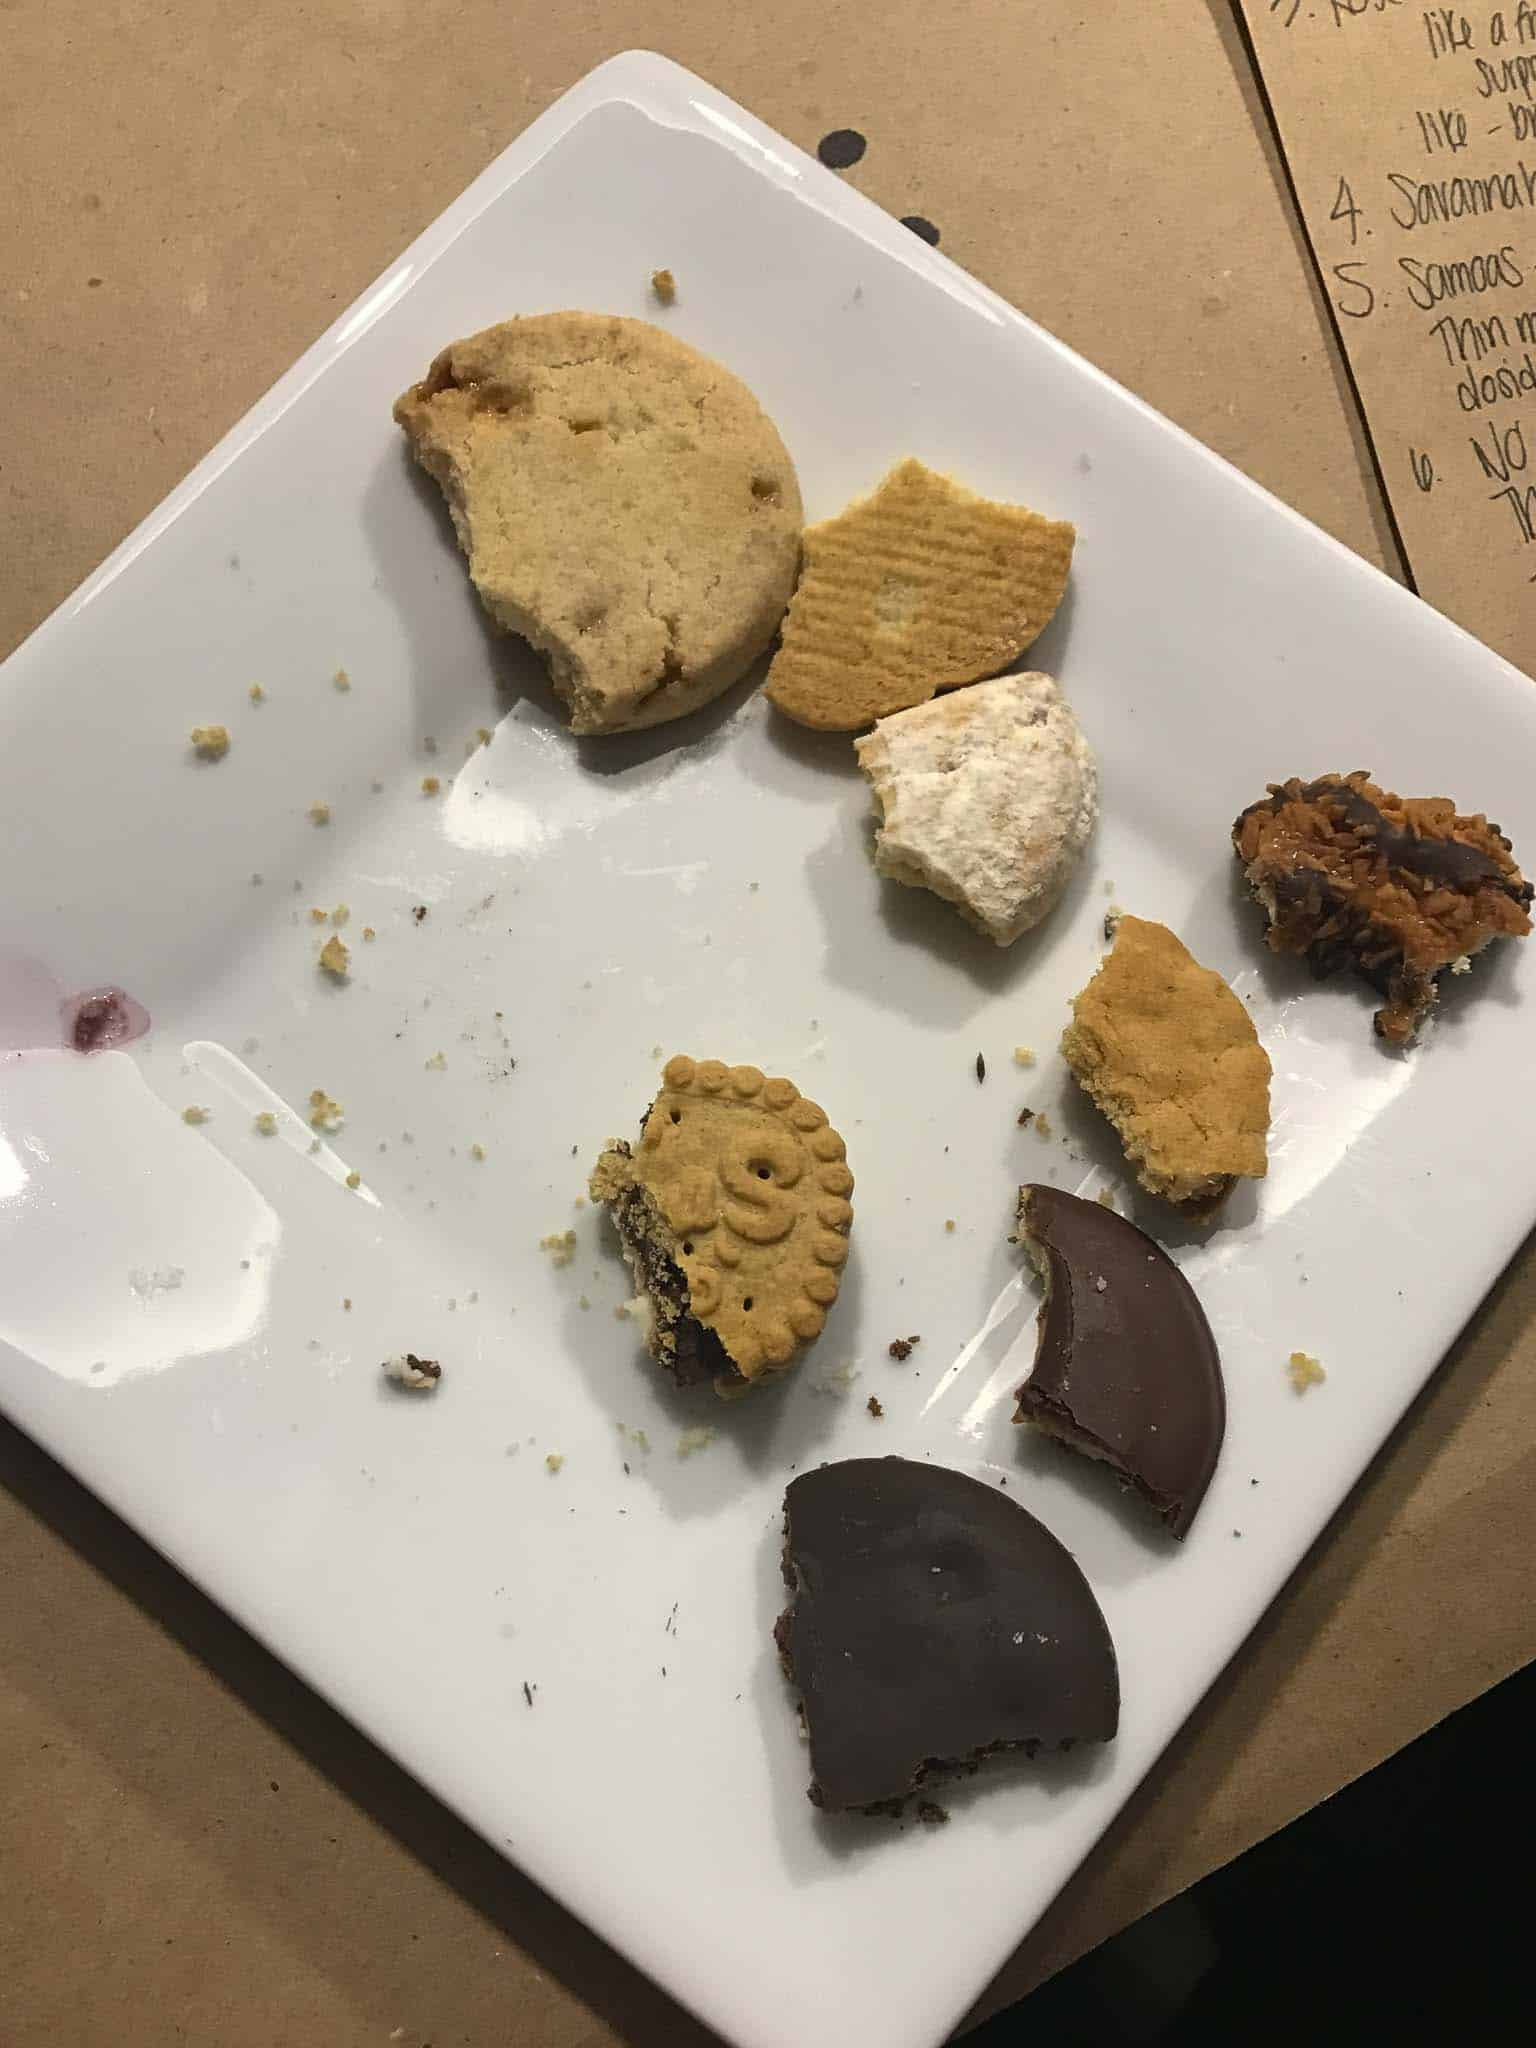 plate of Girl Scout cookies with small bites taken out of each one